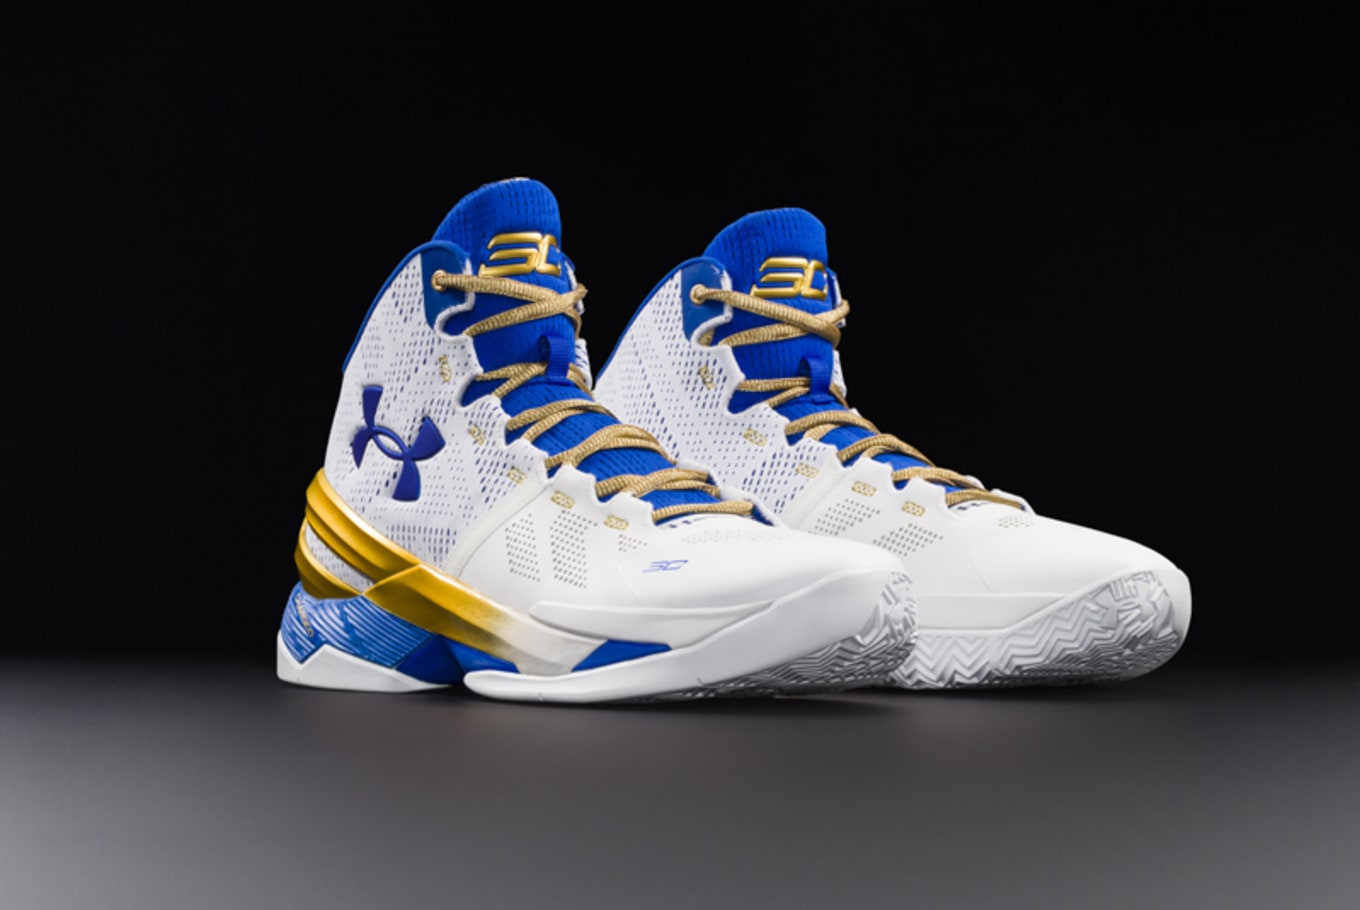 6f0aa66c2f Under Armour Curry Two 'Gold Rings' Release Information | Sole Collector